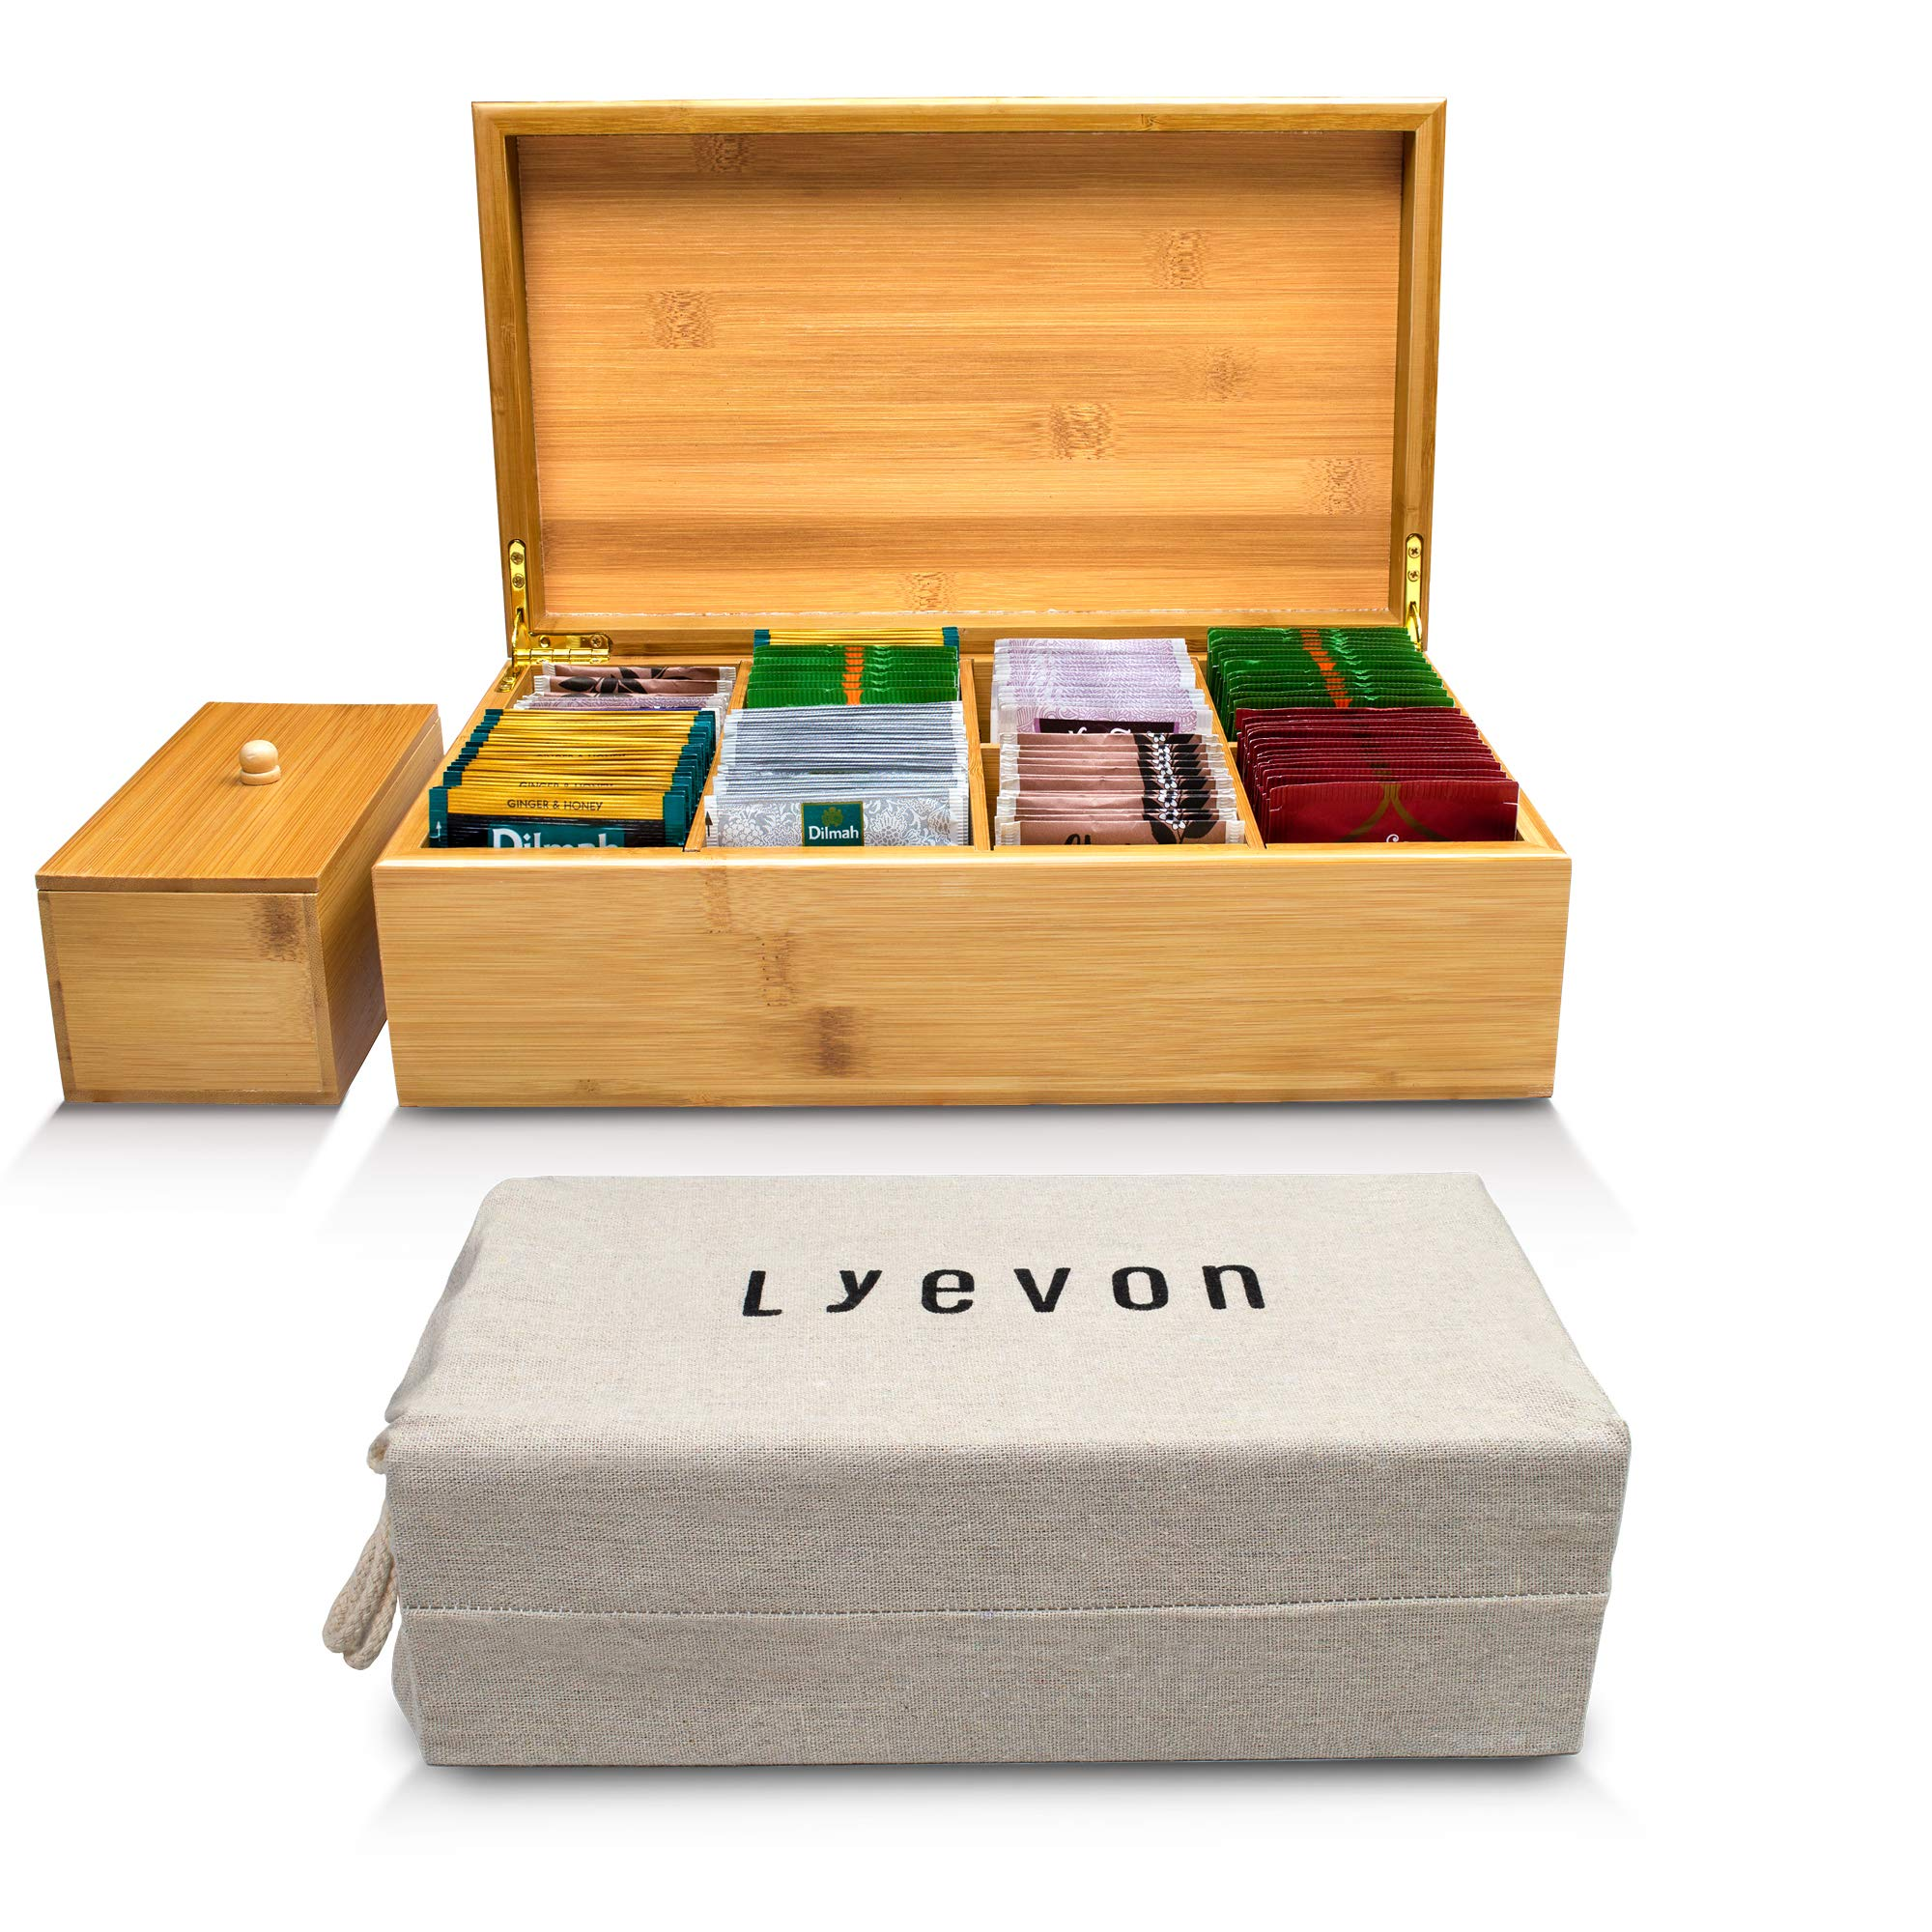 Tea Box Organizer - 8 Adjustable Compartments - Handmade Bamboo Tea Chest by Lyevon - holds 125 Tea Bags - With Container For Loose Leaf Tea - Natural Bamboo